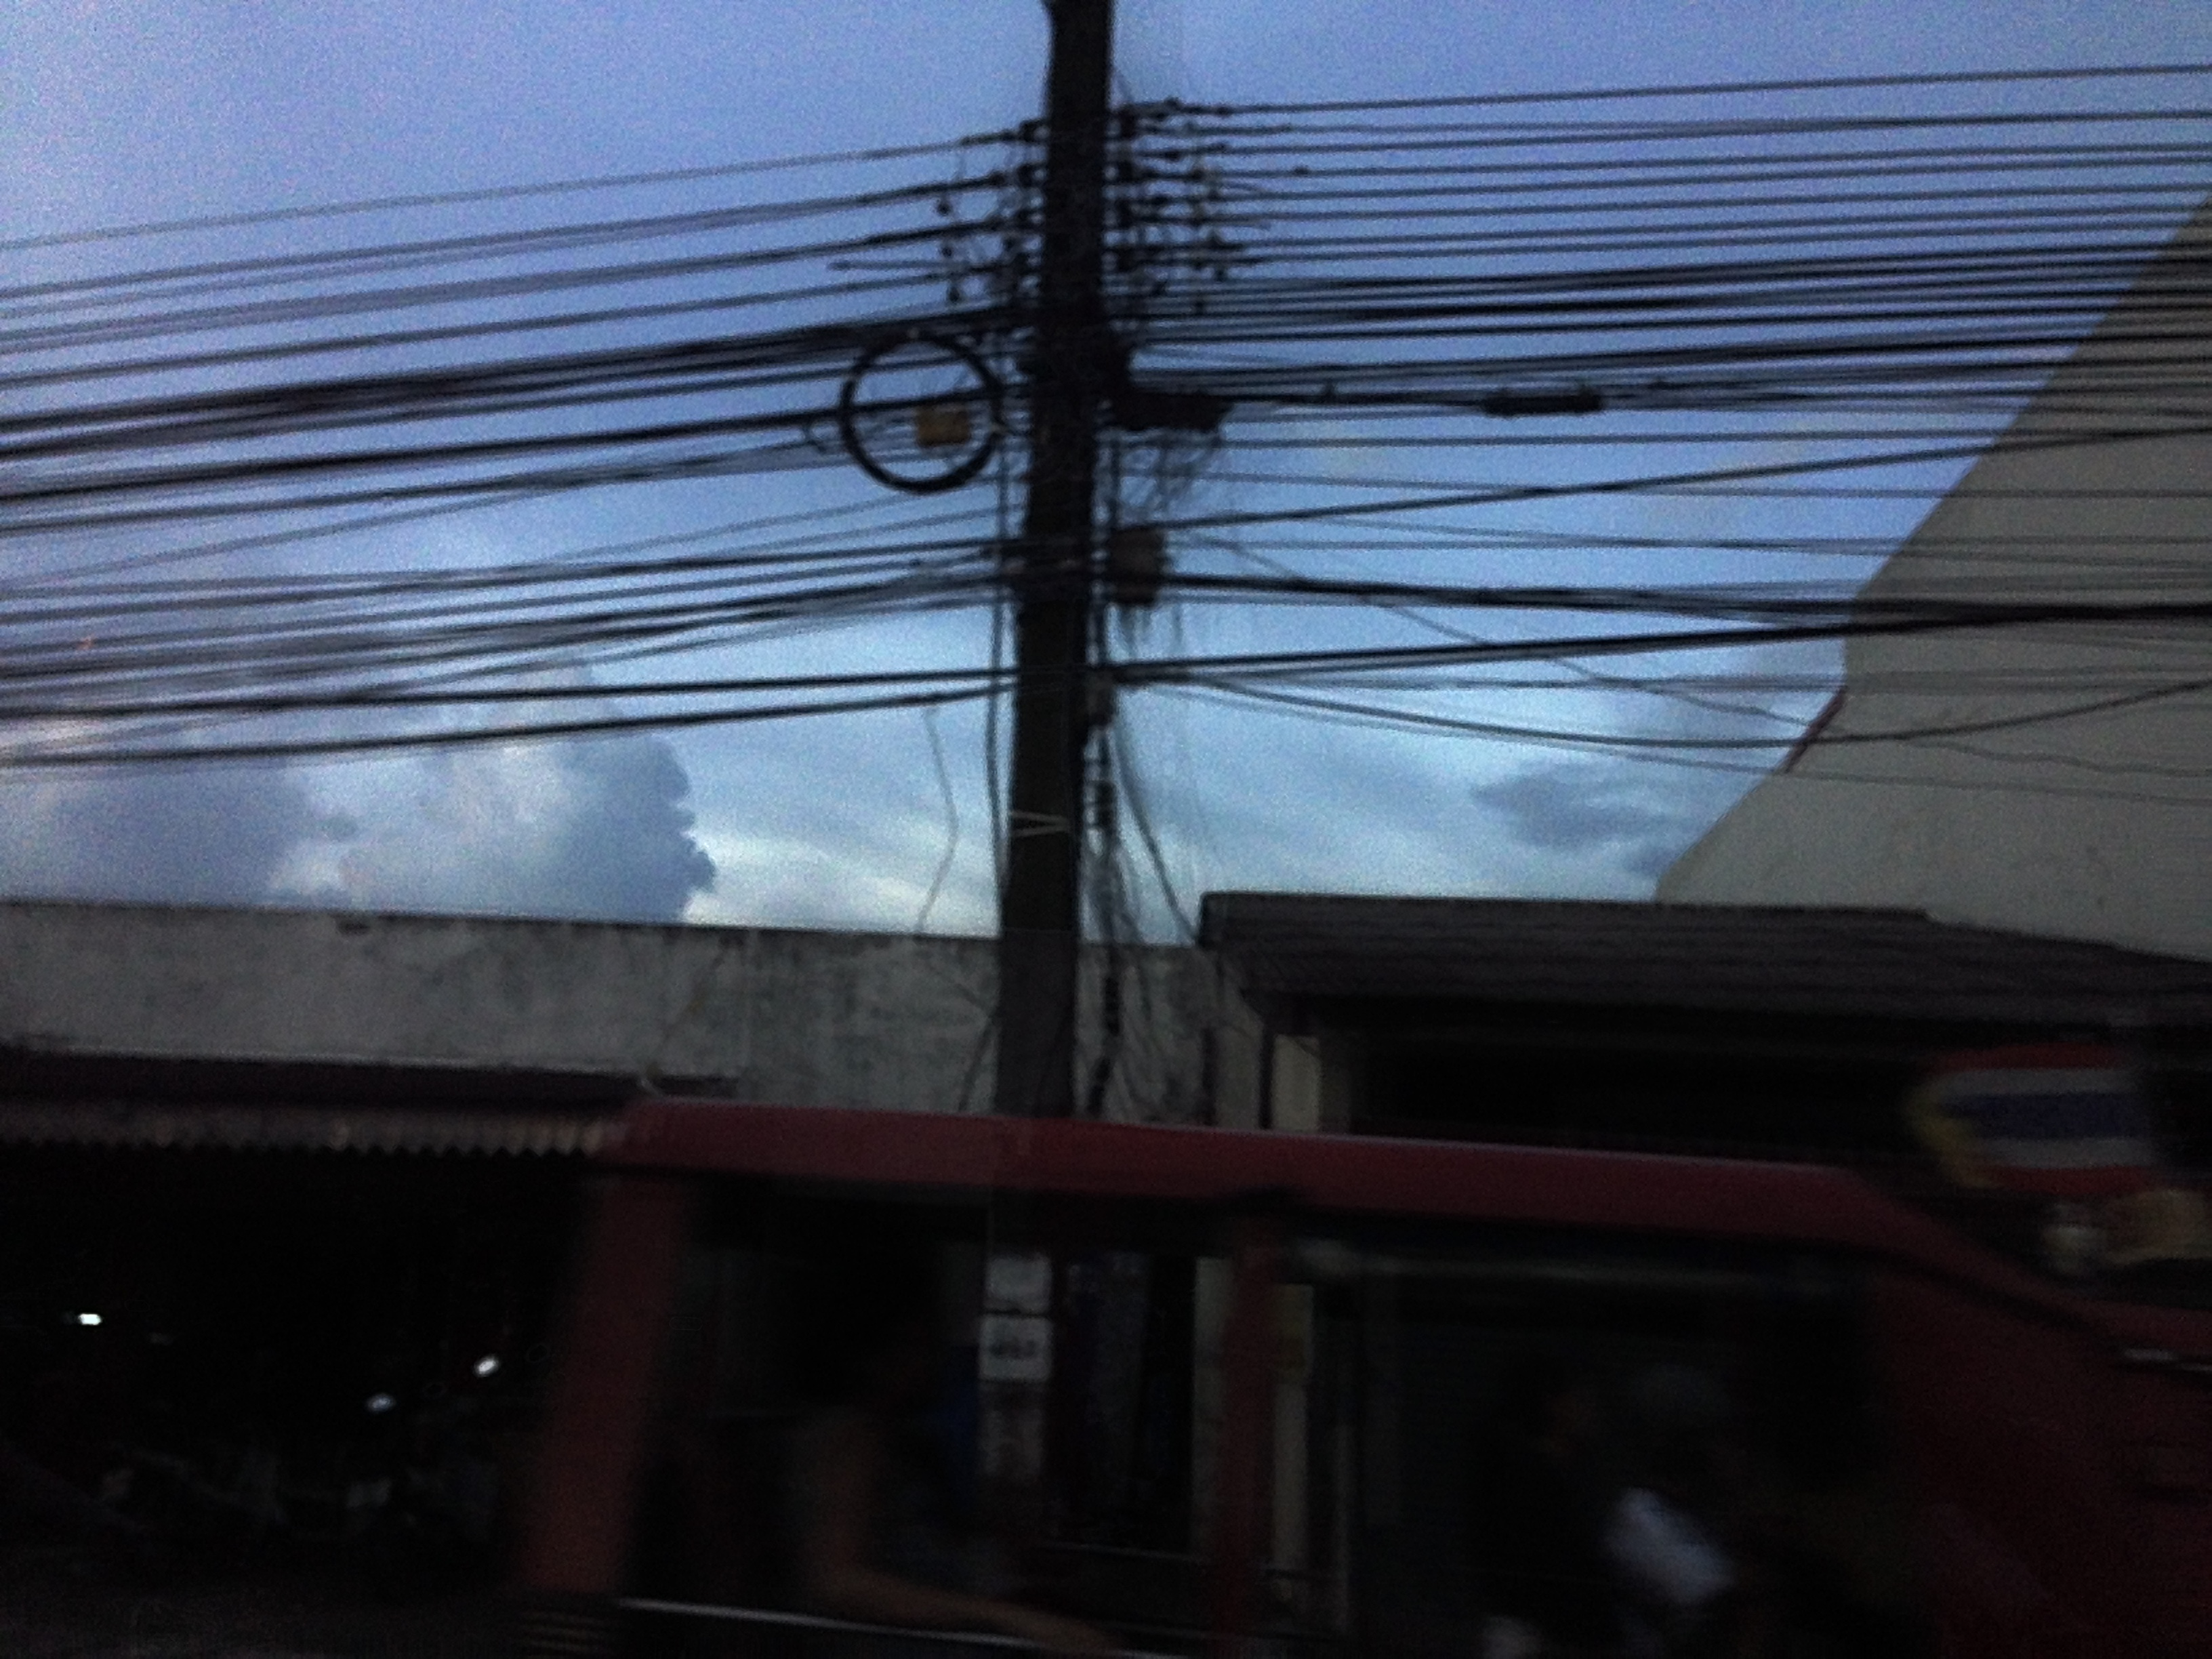 Electric pole with wires running across the middle of the photo. Sky in the background and a low building in